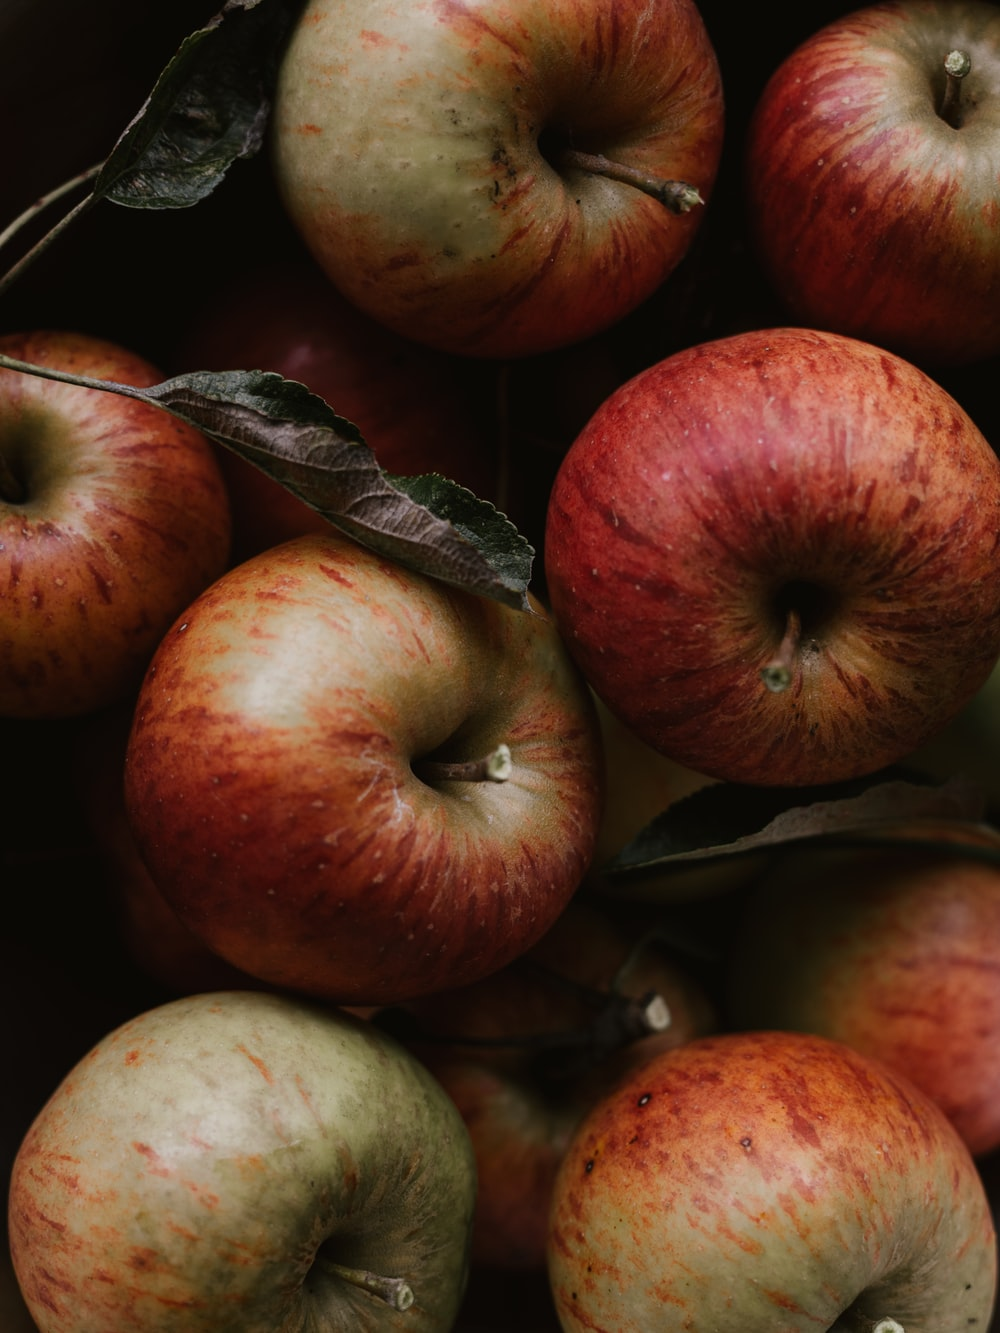 red apples on brown wooden table